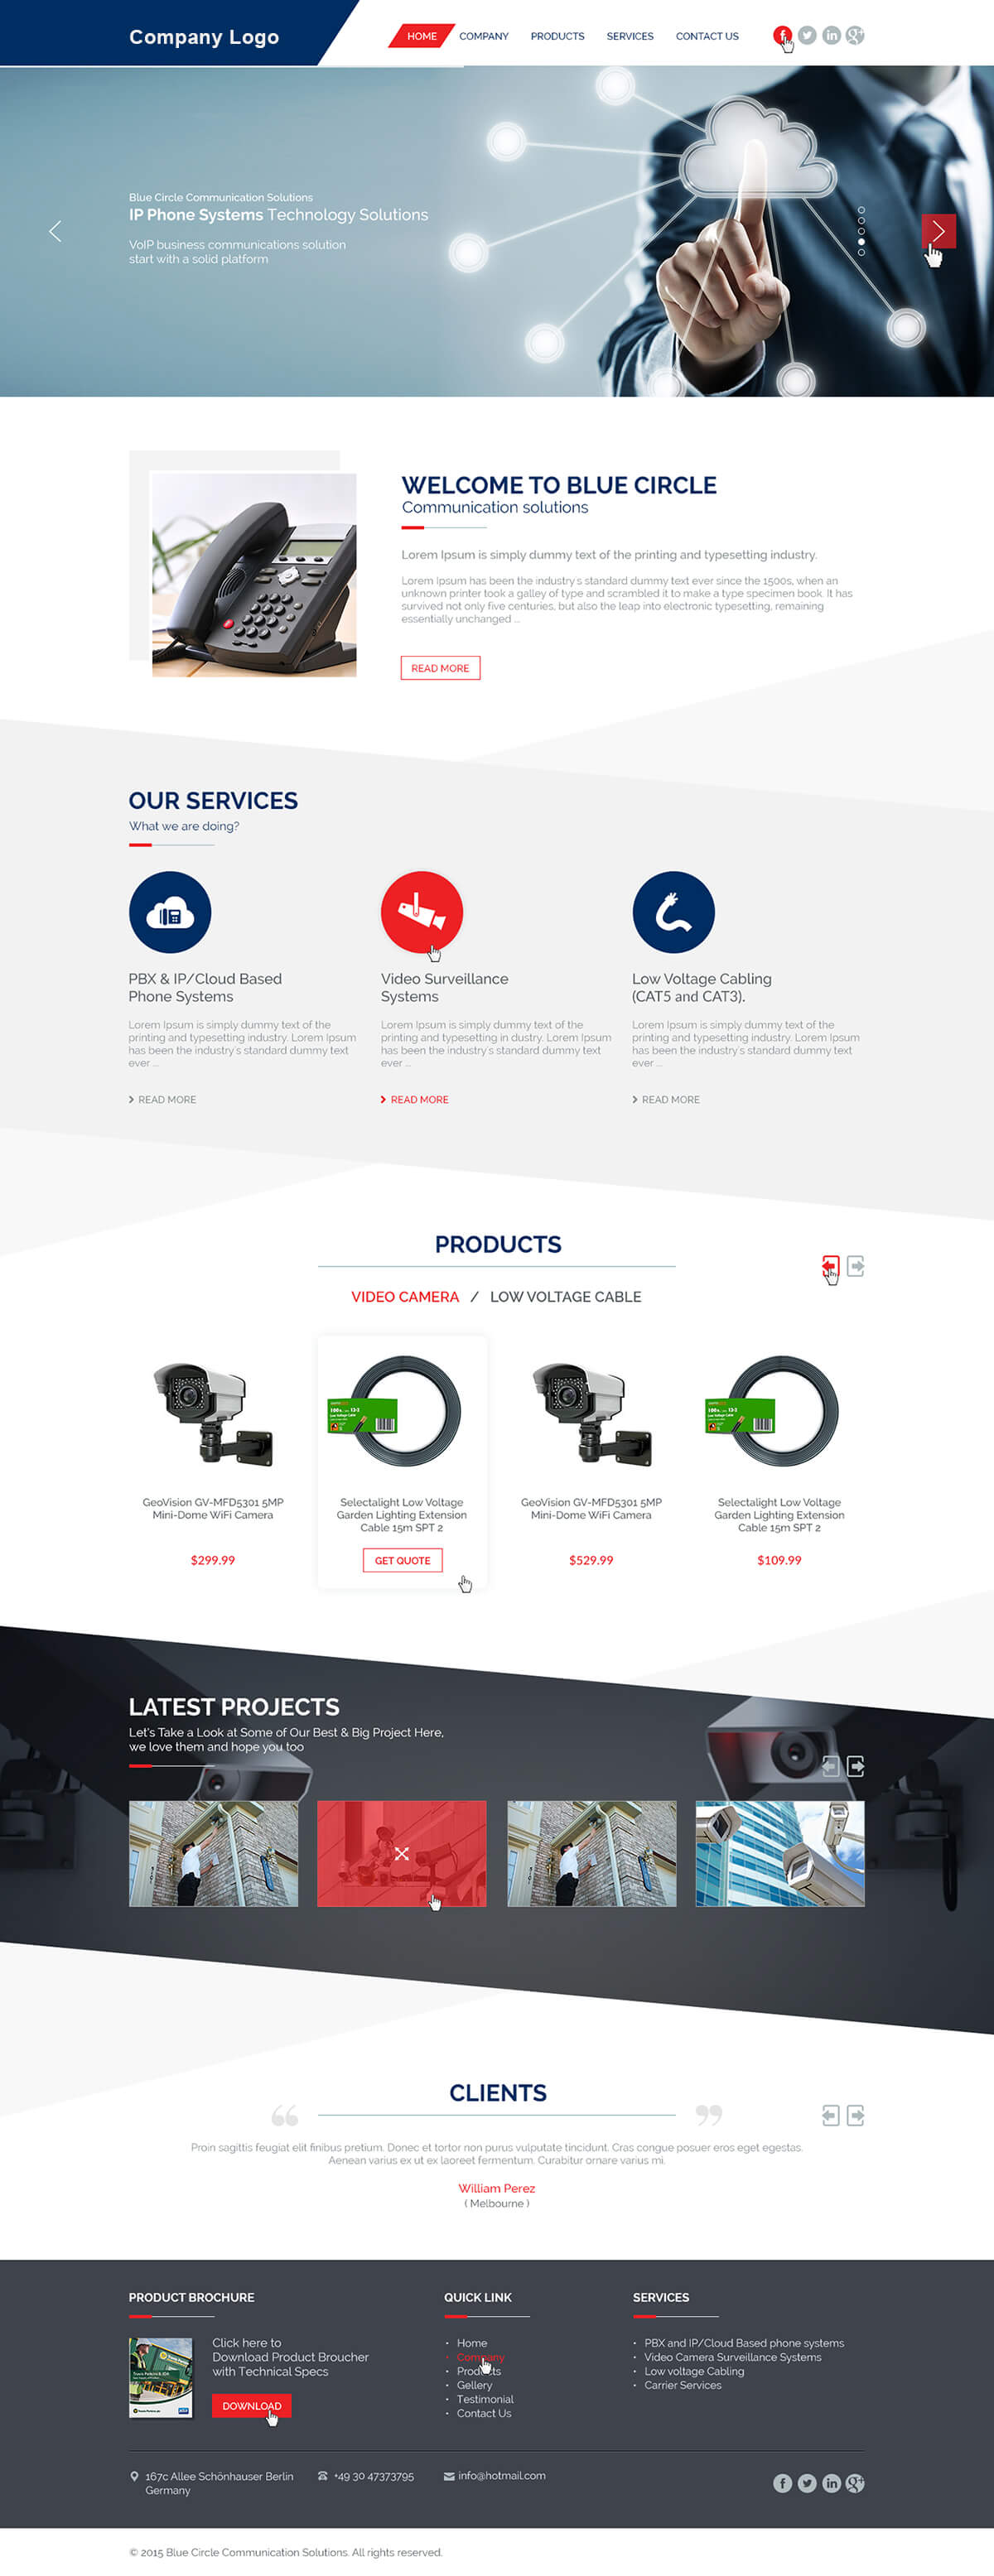 Small business website template ved web services friedricerecipe Images